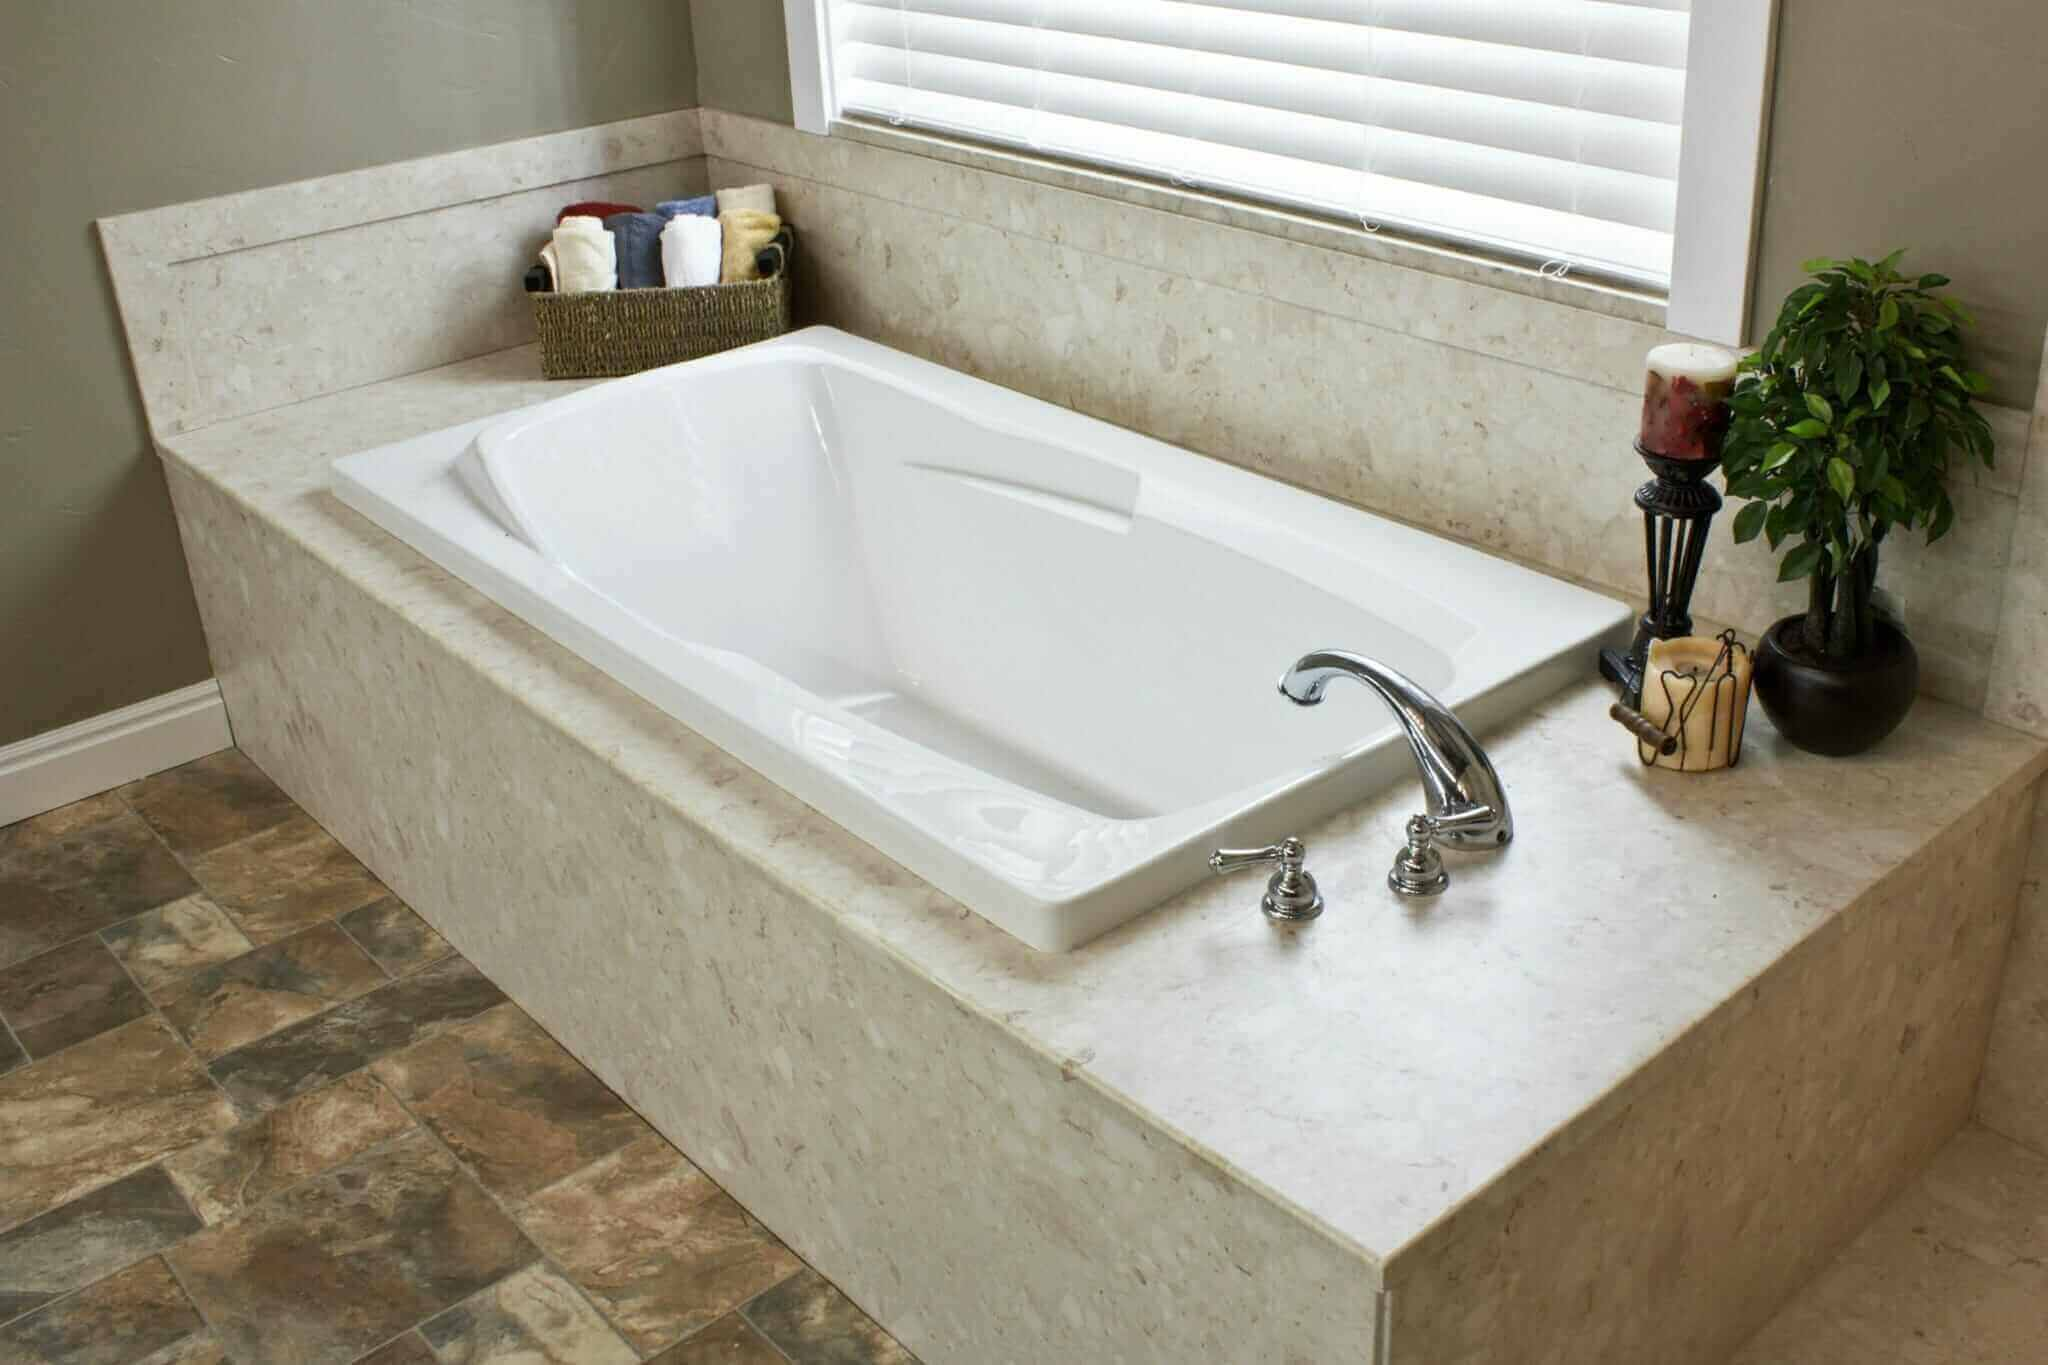 Bathtub design for your unique style and needs for Bathroom tub designs